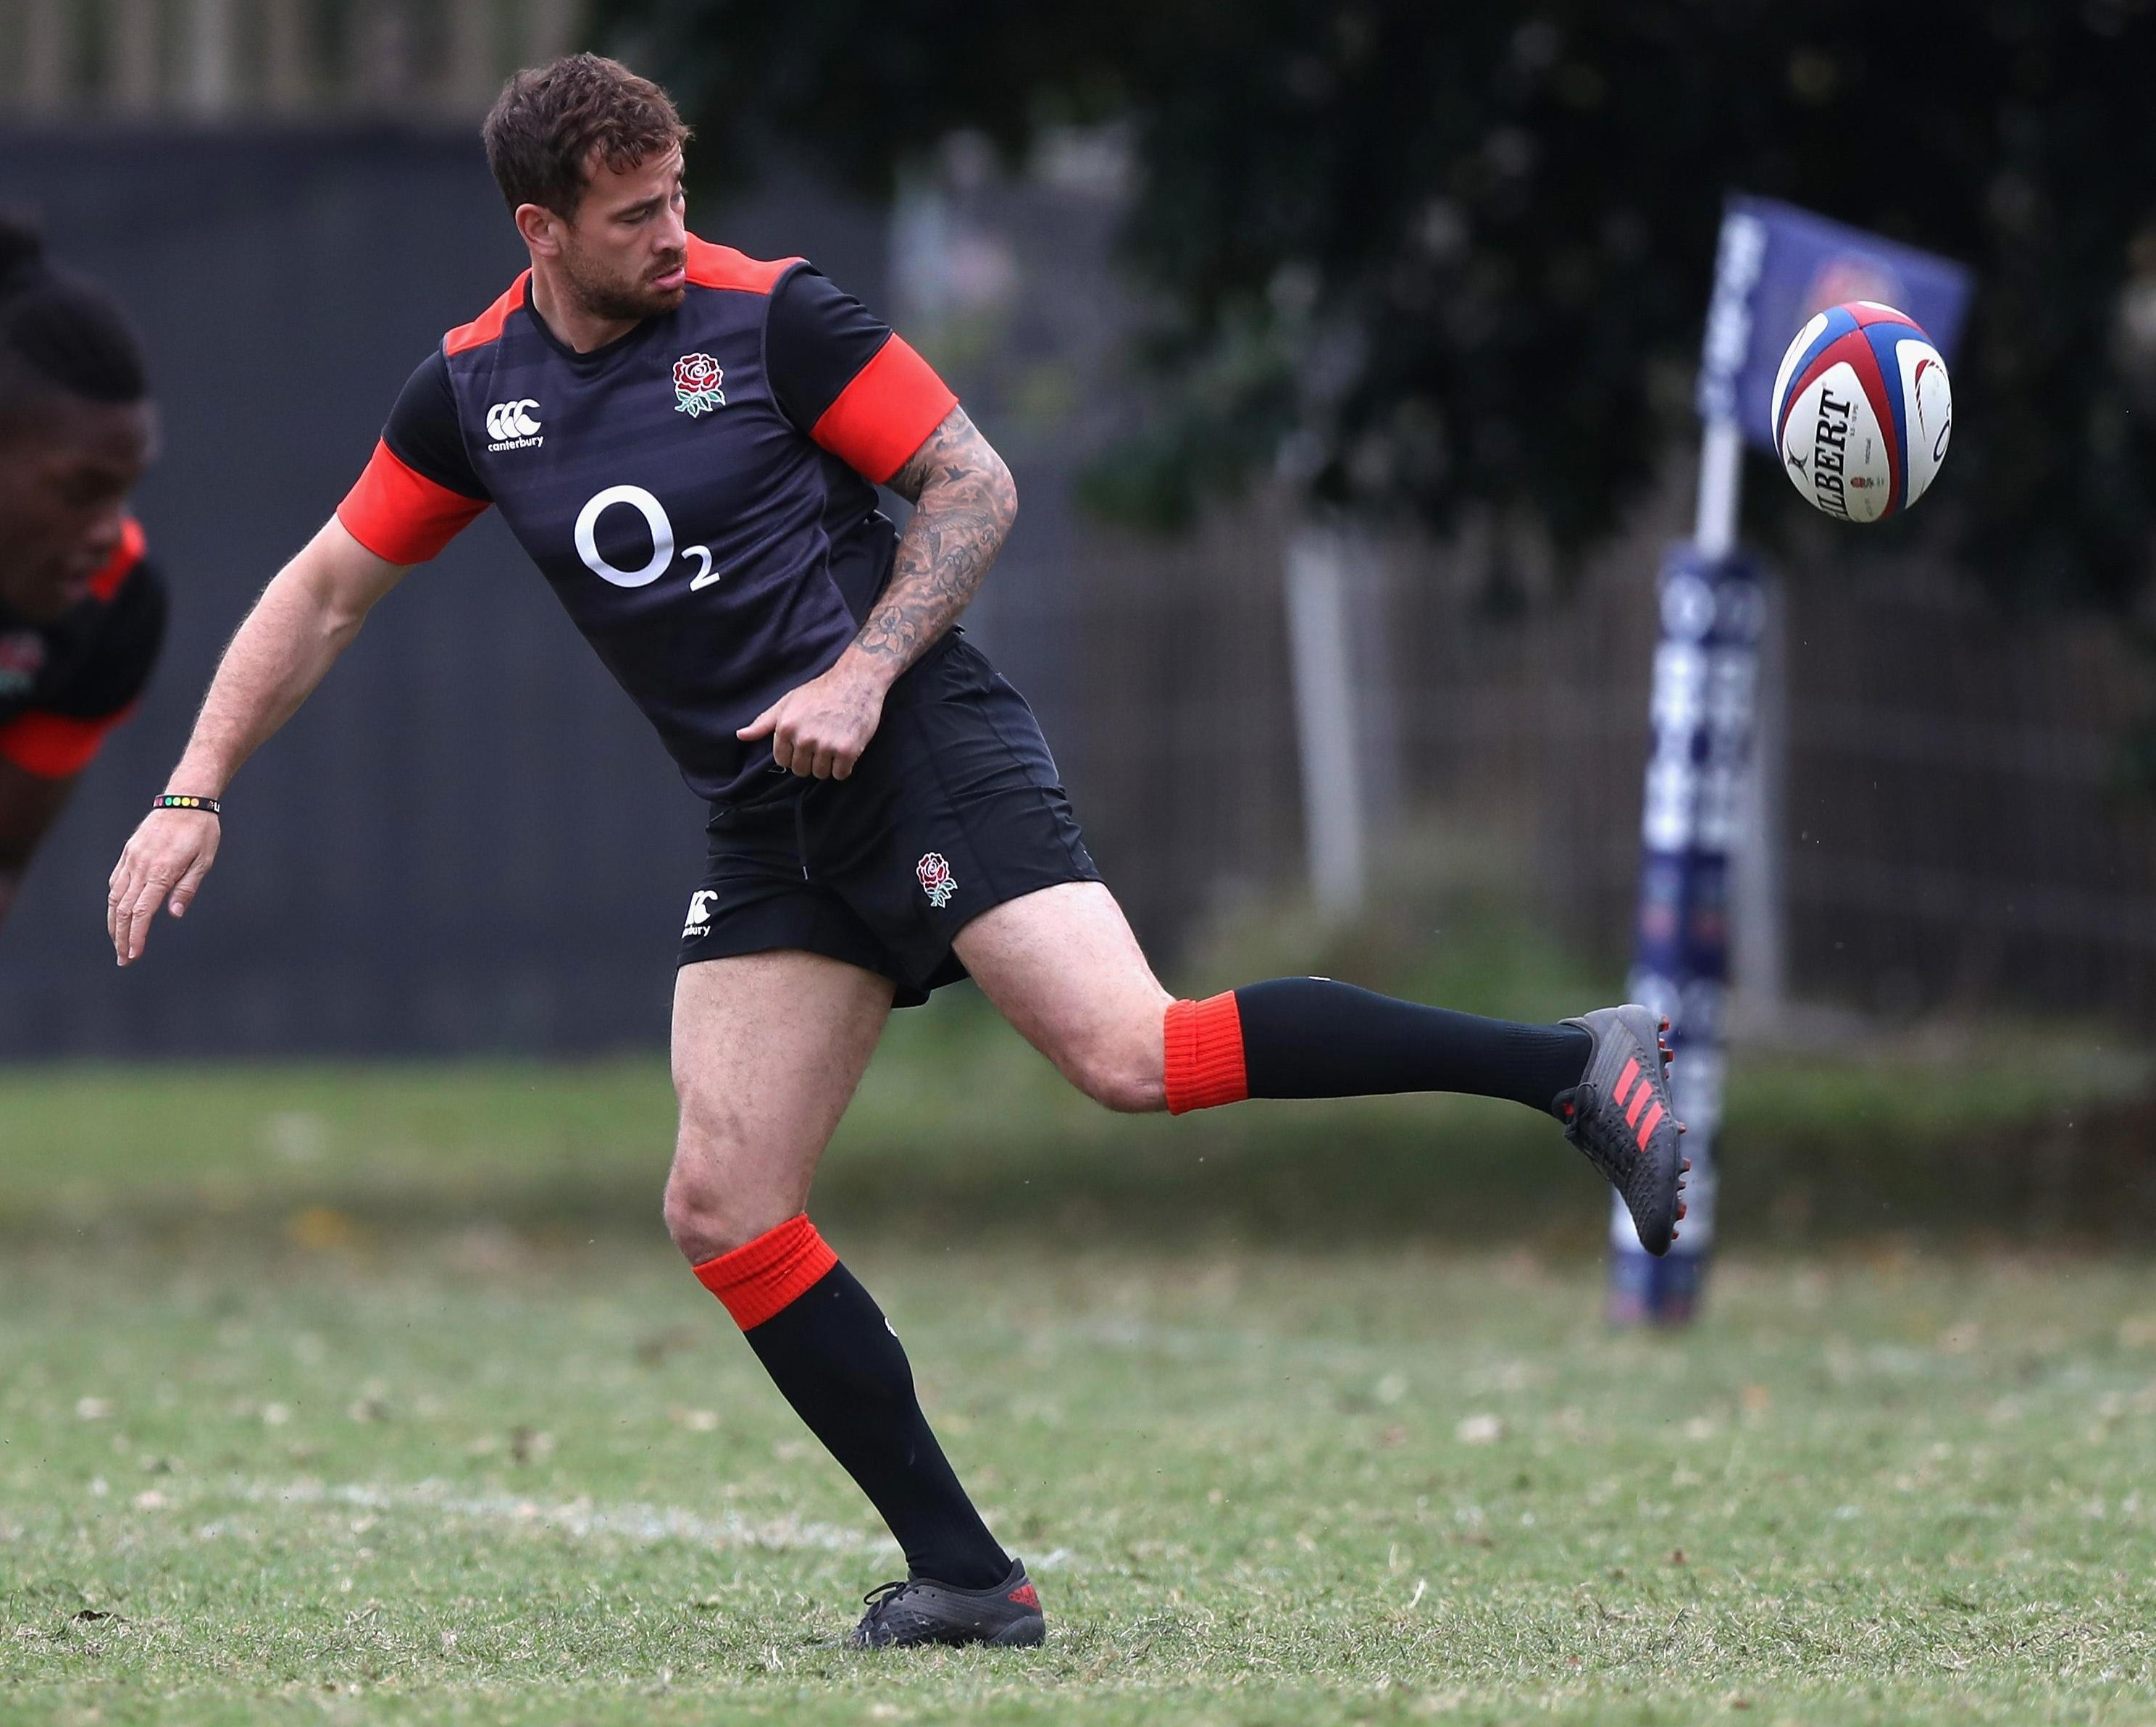 Cipriani's silky skills set him apart from all the other Premiership fly-halfs